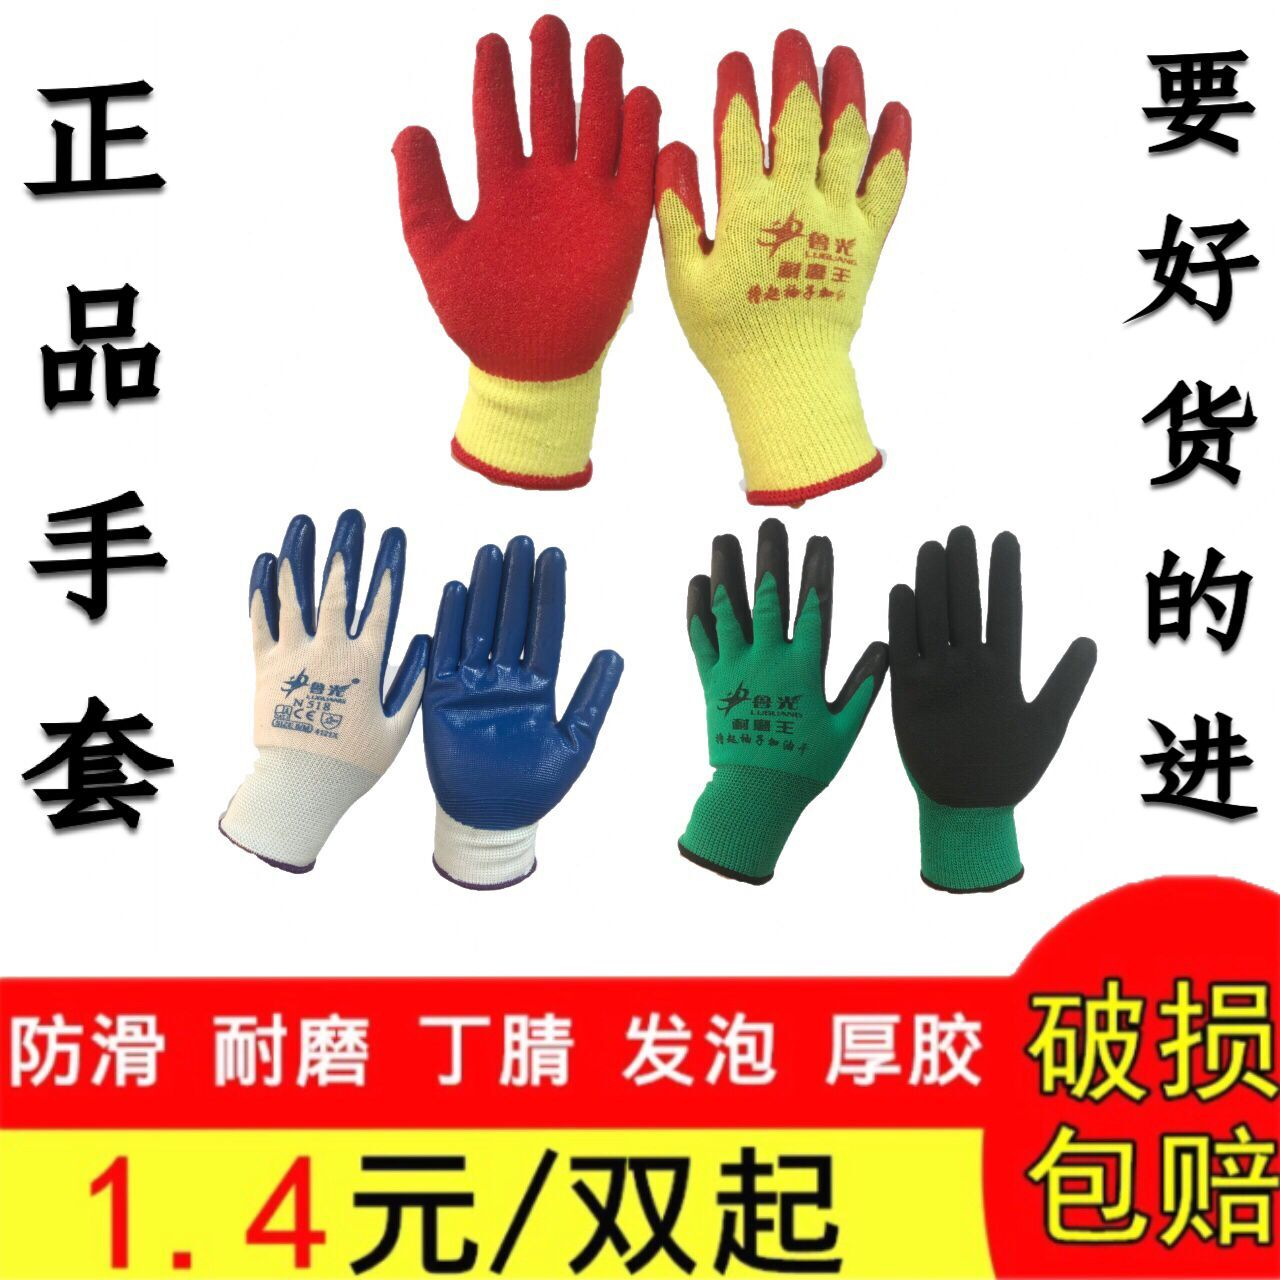 Rubber gloves for labor protection work wear resistant and antiskid dipping rubber field work nitrile labor wear resistant film gloves